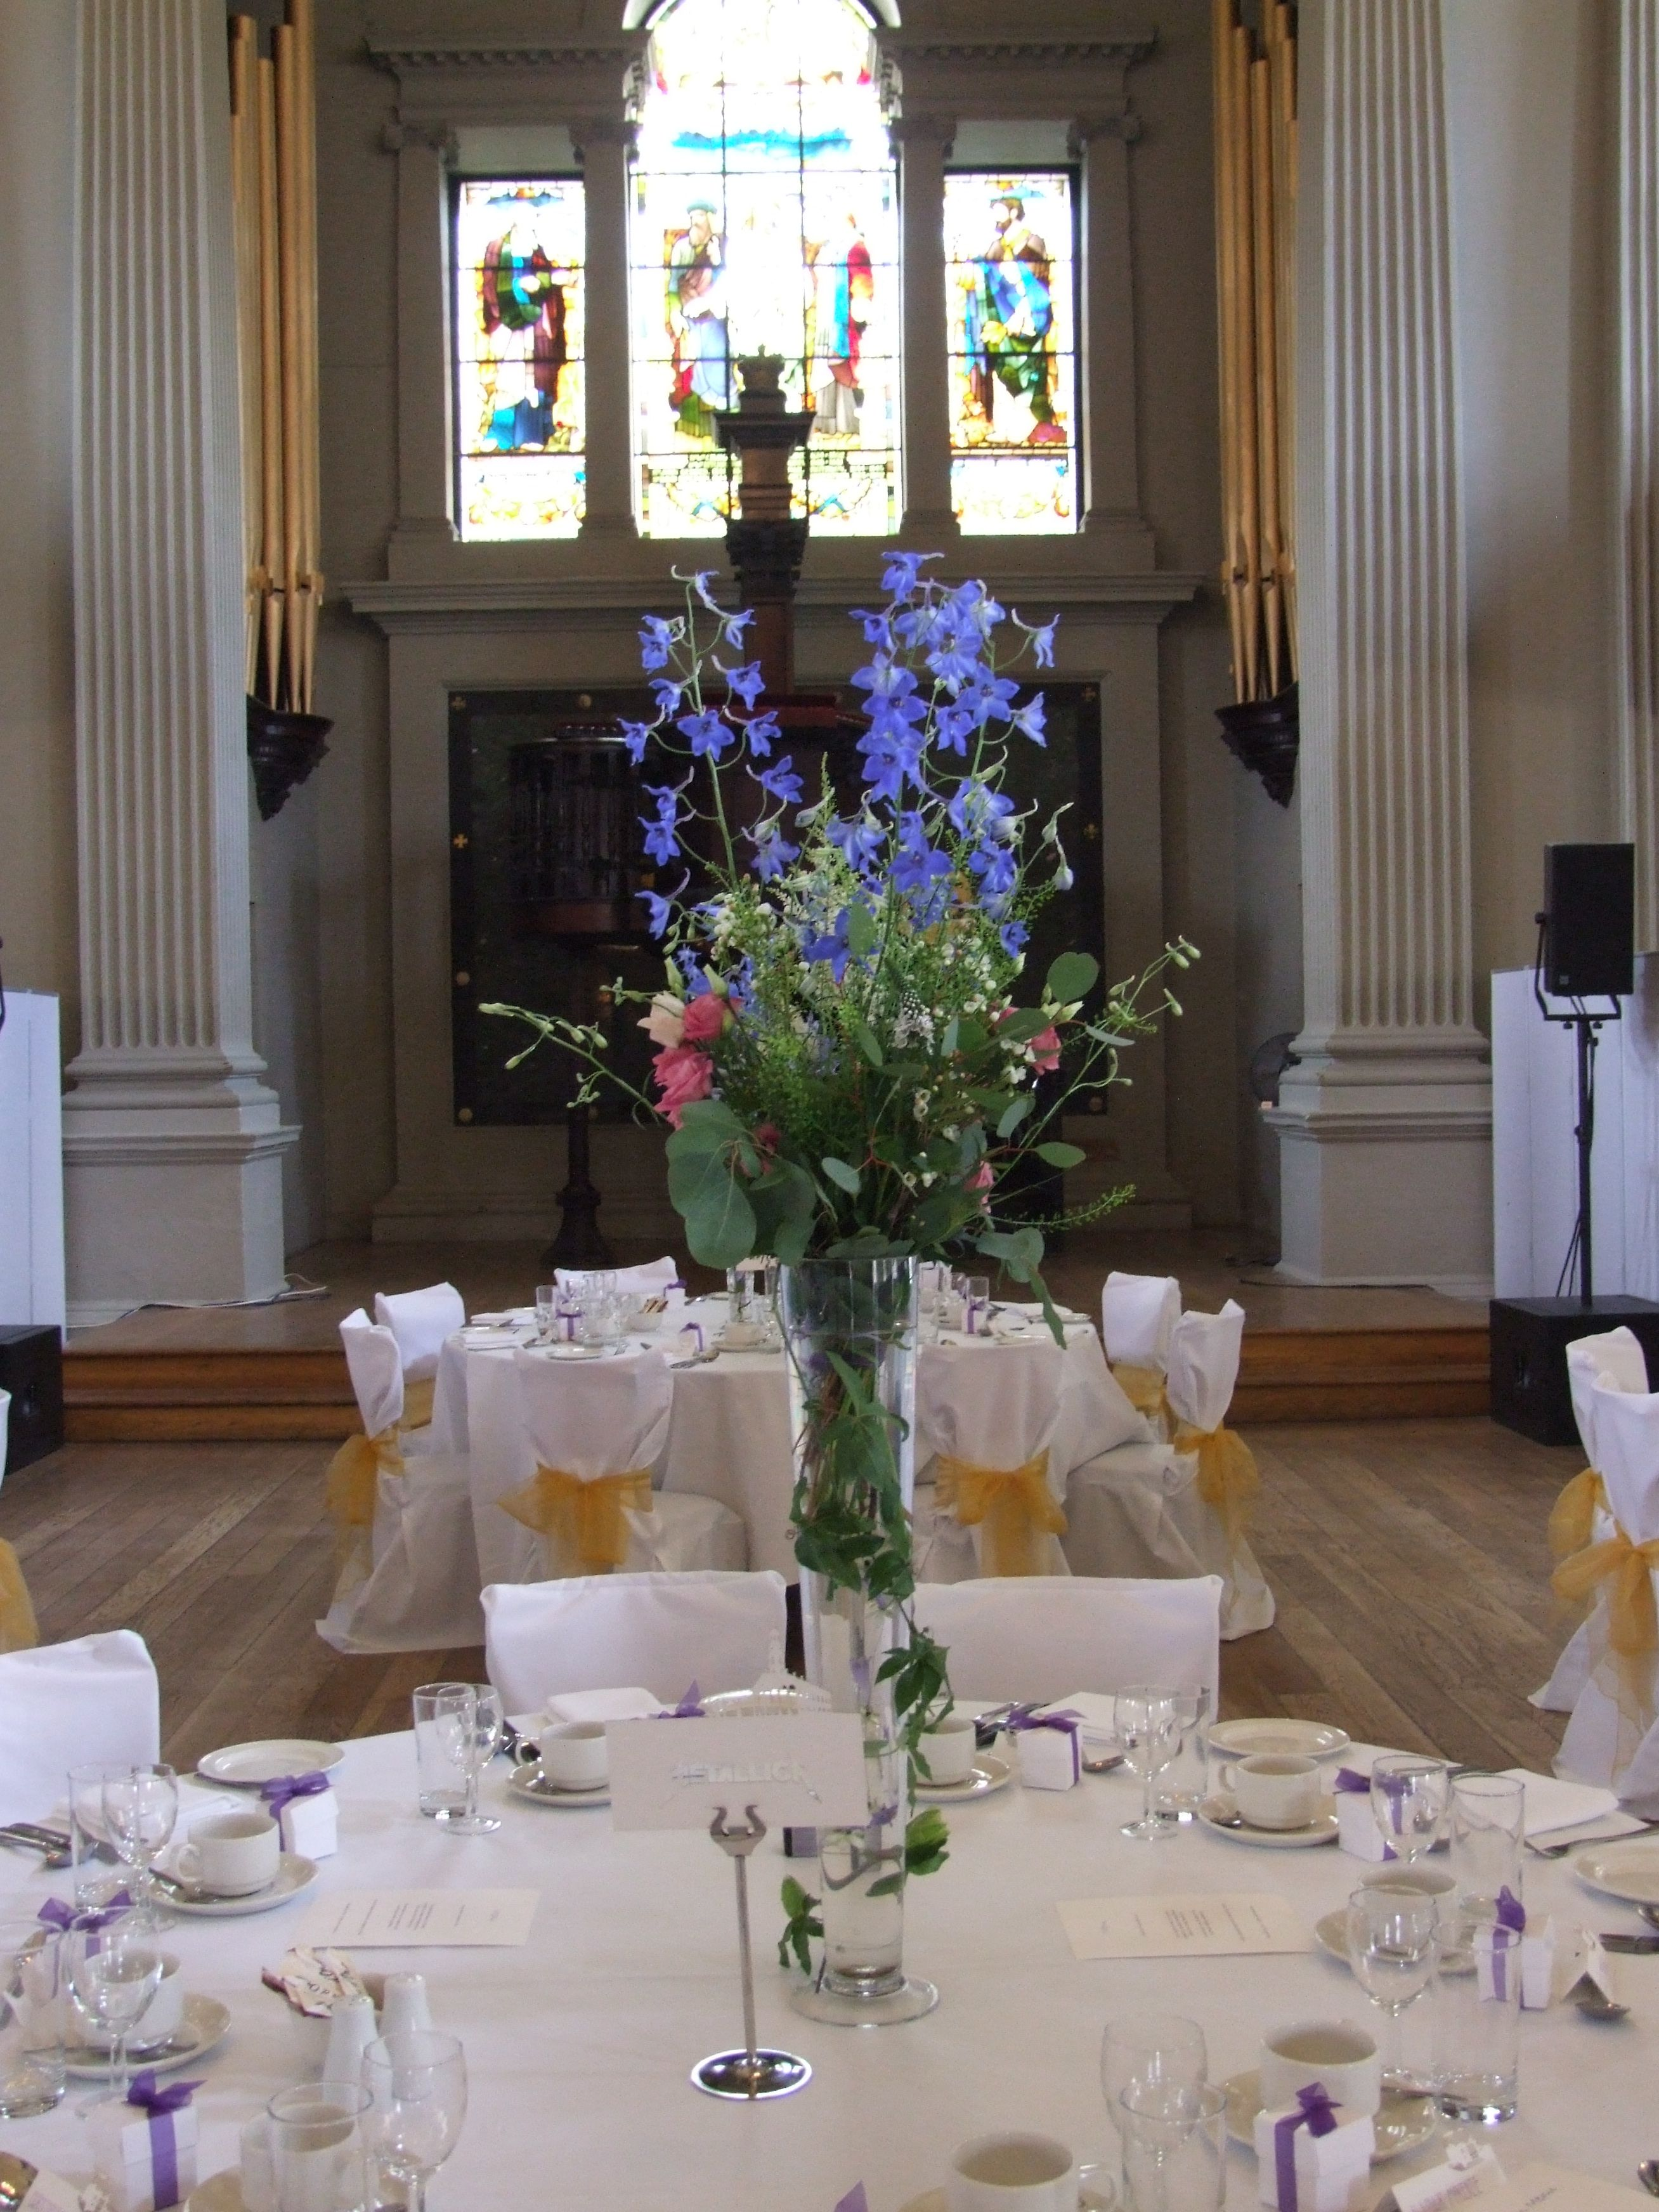 Colourful Table Centres With Bright Blue Delphiniums